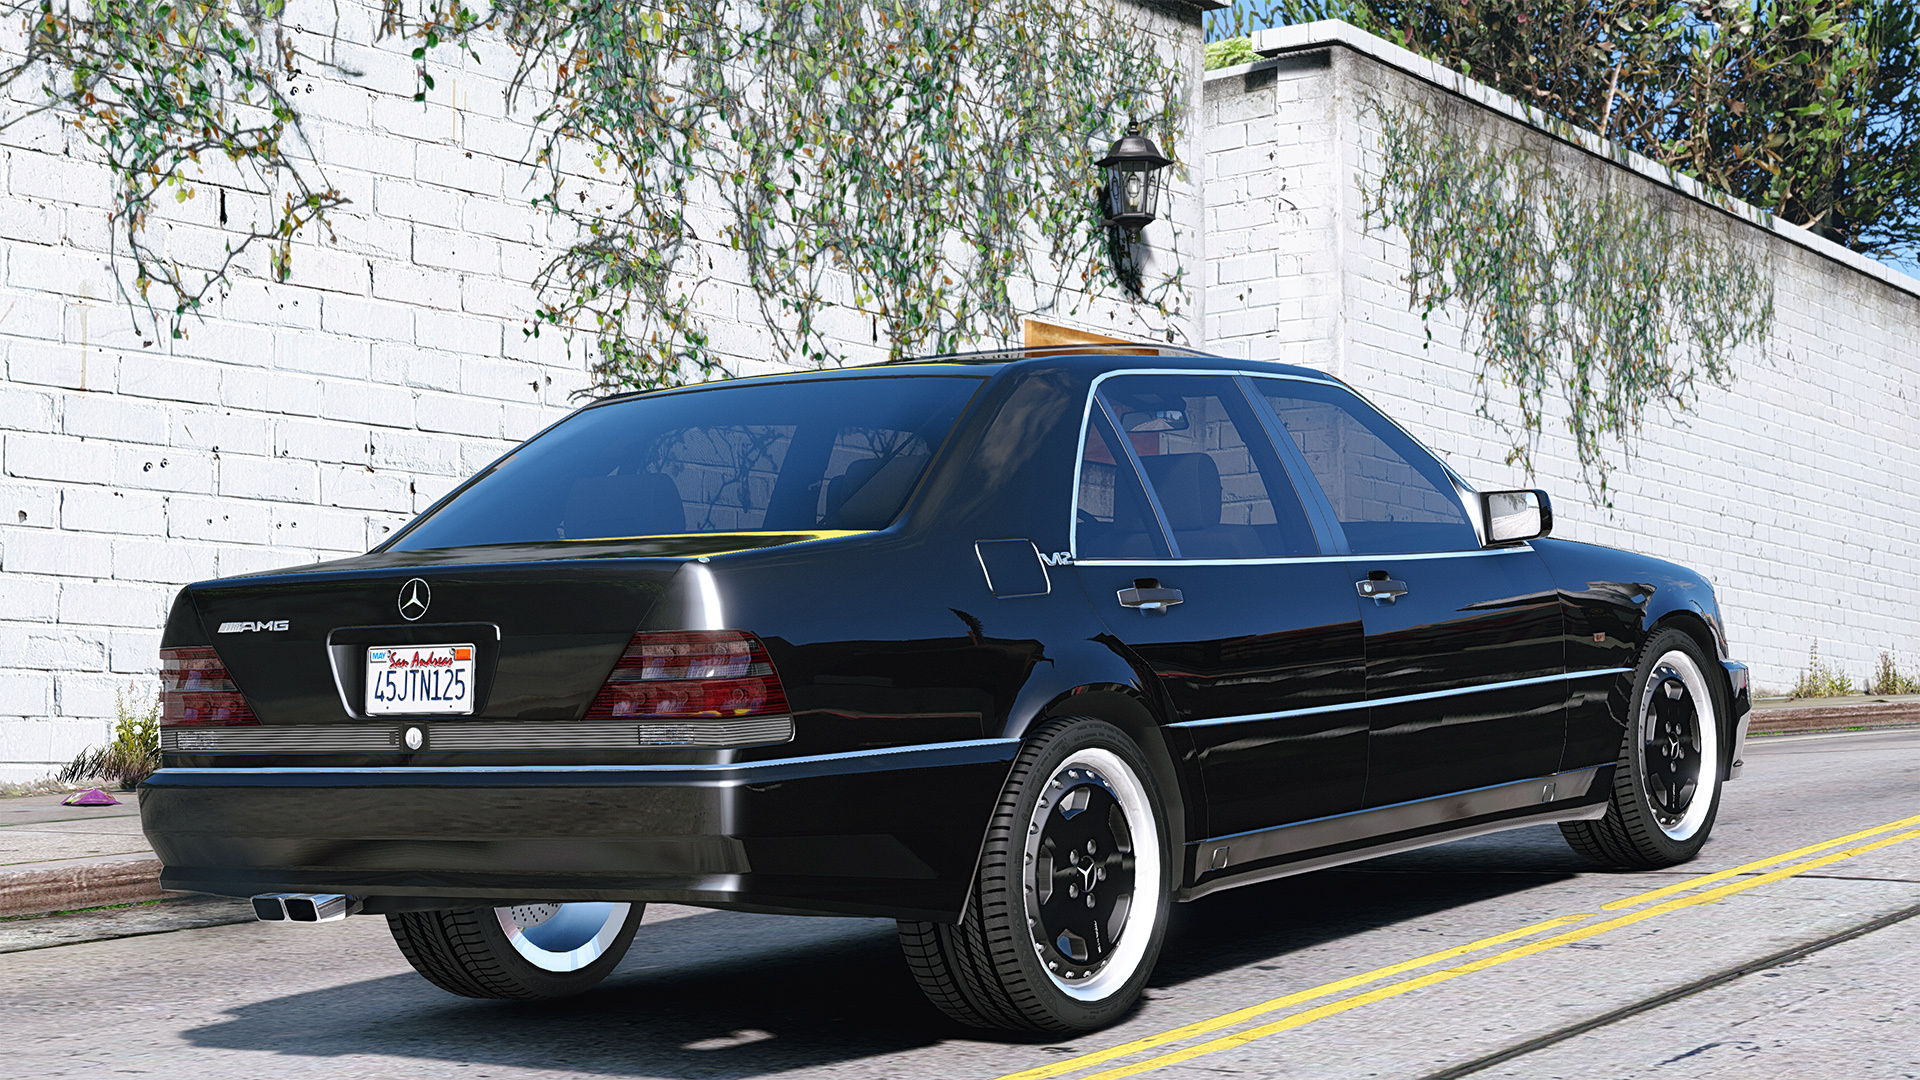 Mercedes benz w140 amg add on replace gta5 for Mercedes benz mercedes benz mercedes benz